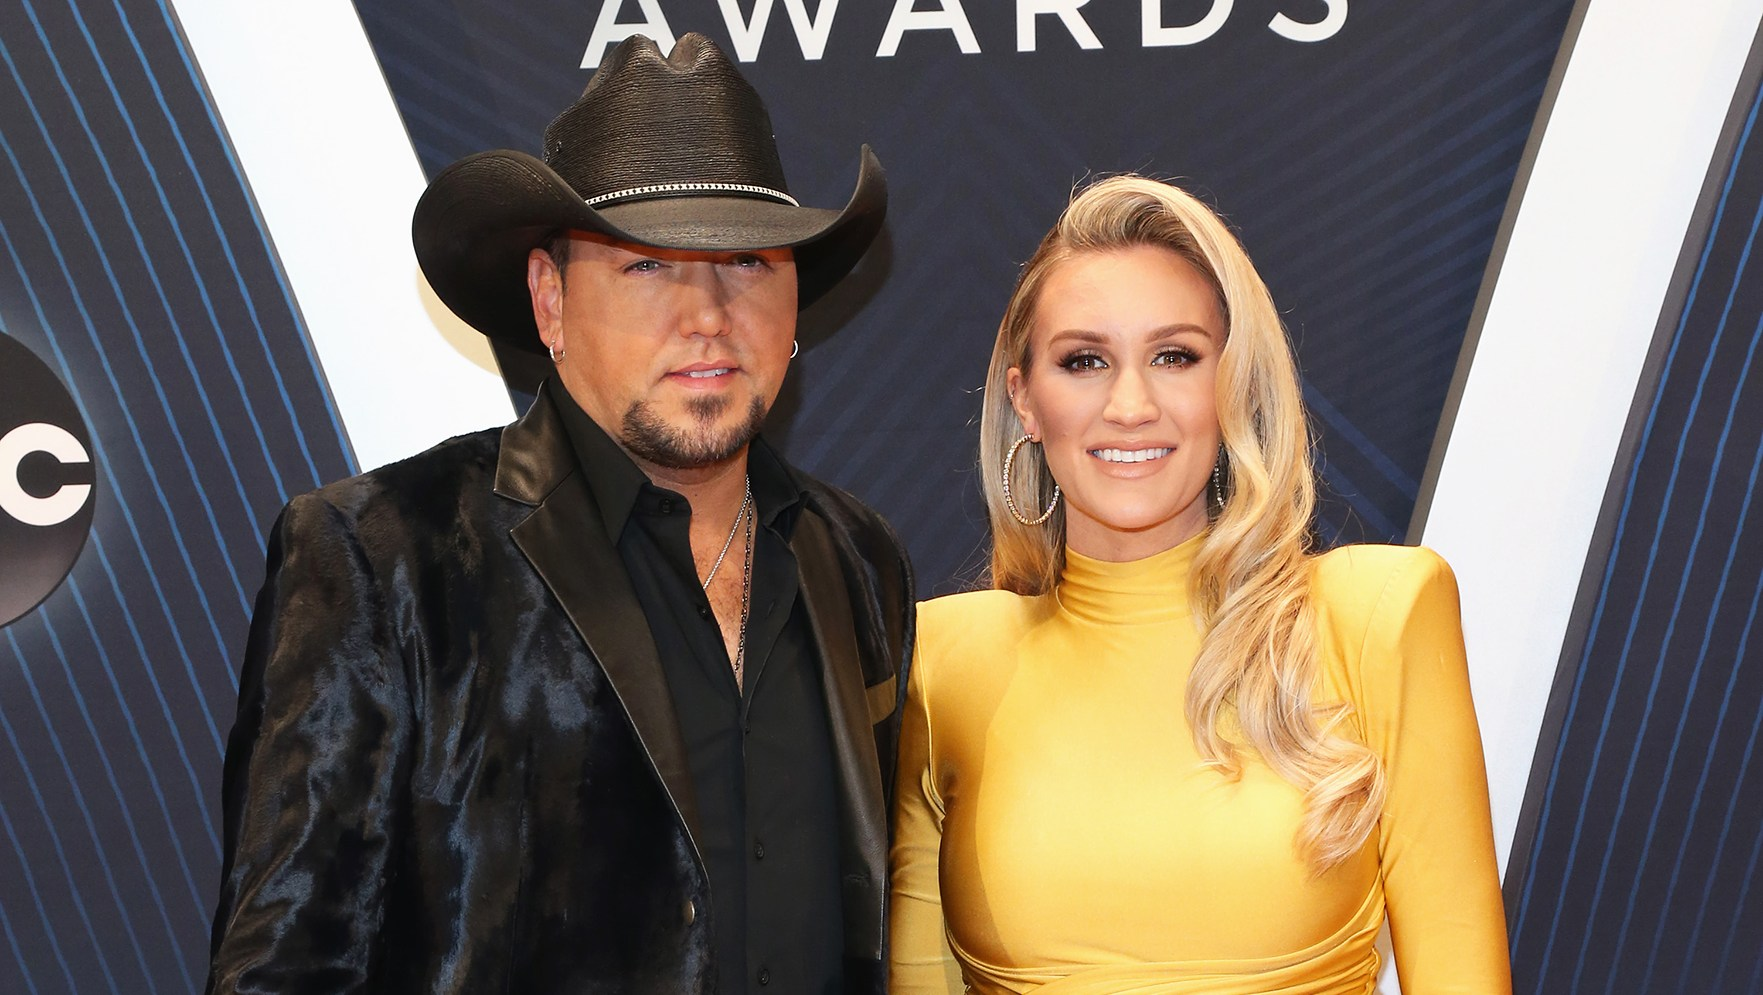 Jason Aldean Brittany Kerr home after Home Birth Blood Transfusion